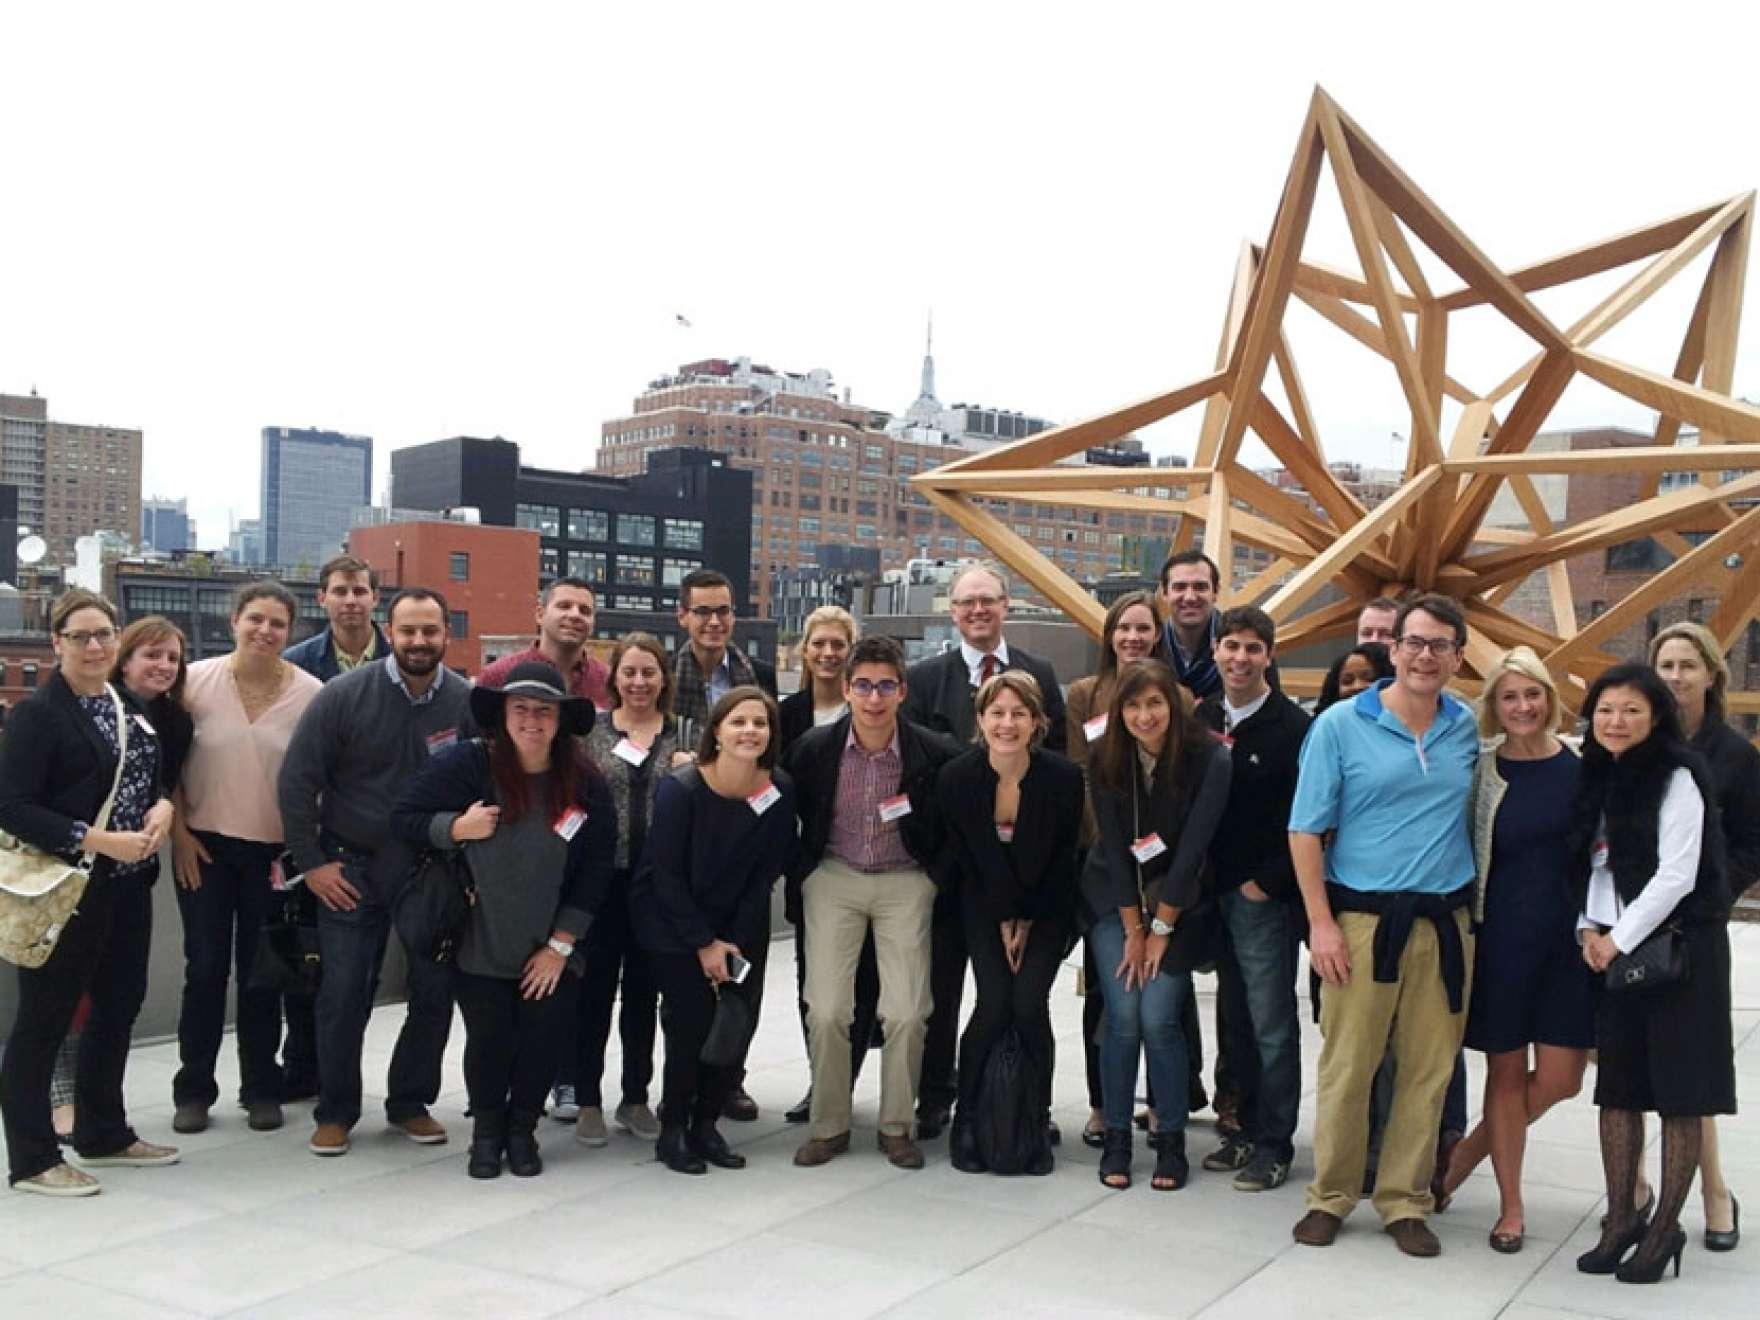 Members of the Museum Council posing on rooftop during New York City trip in November 2015